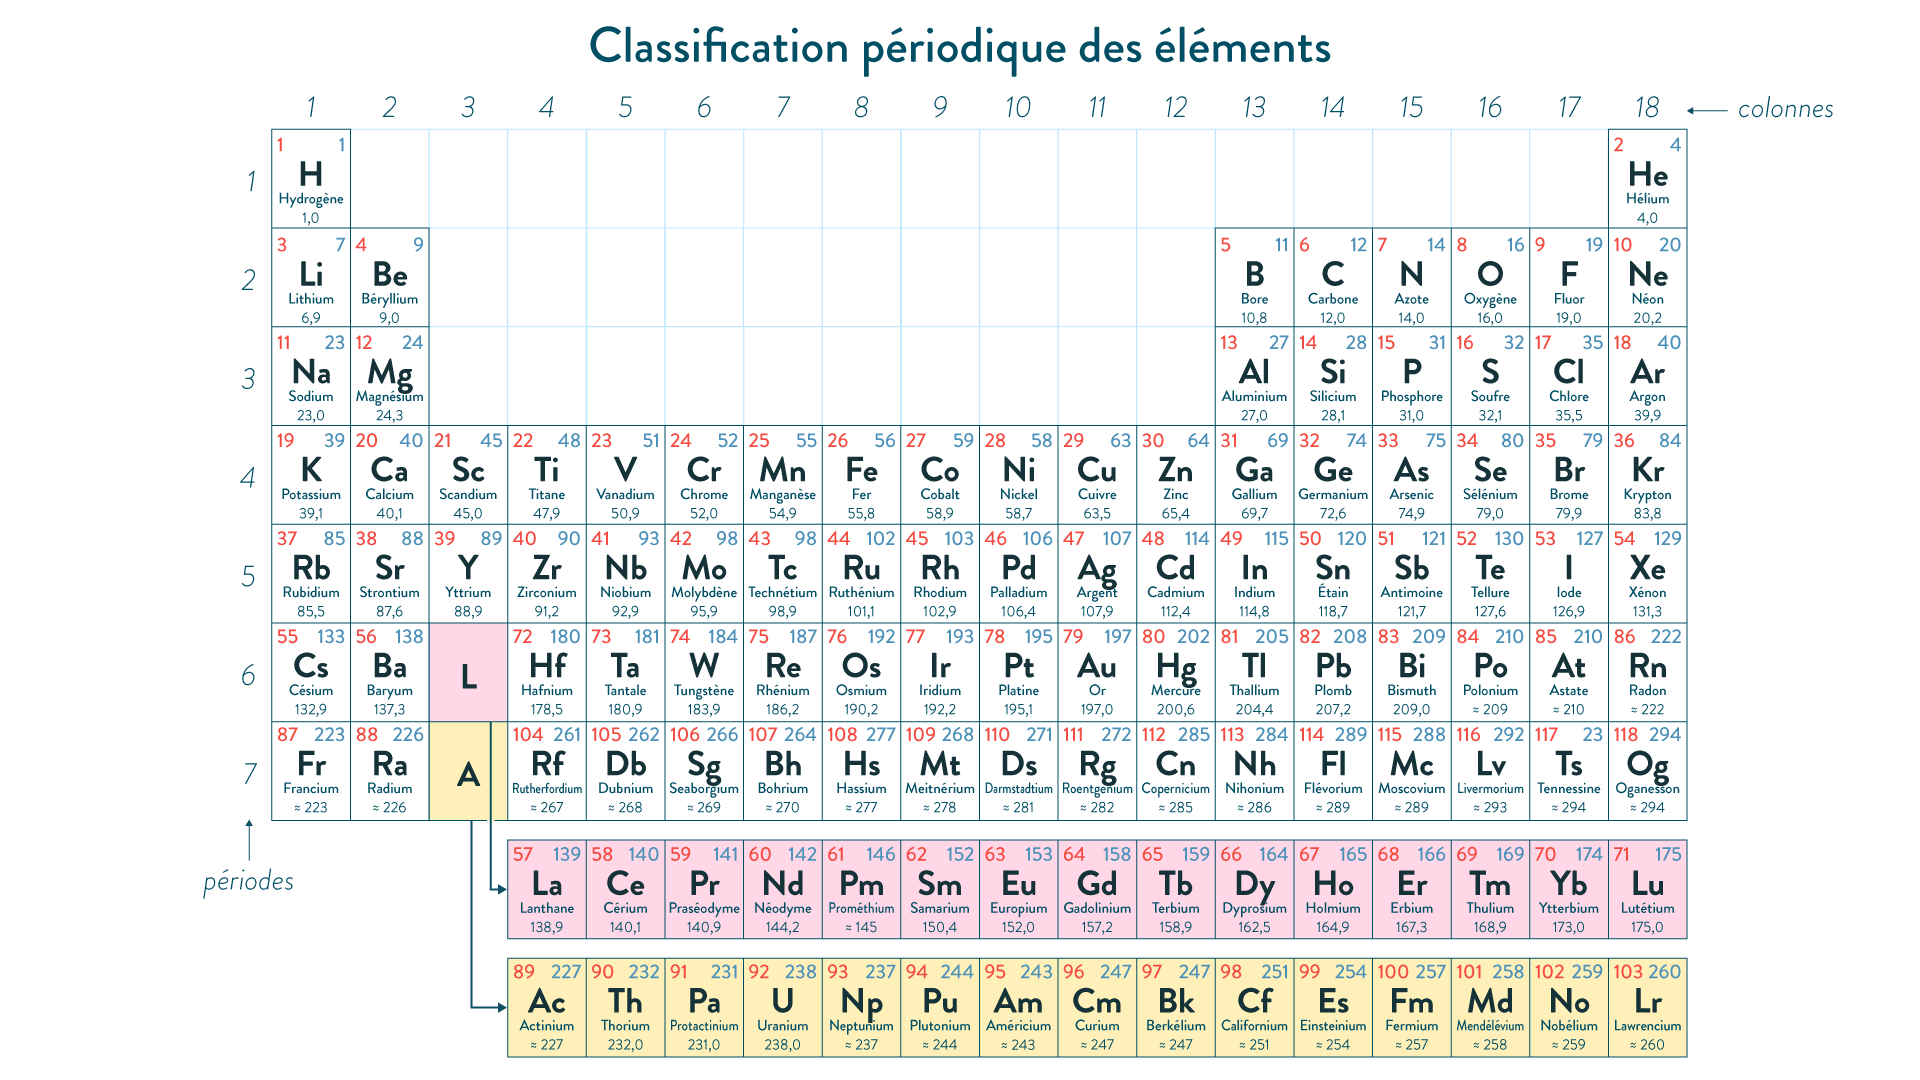 Tableau classification